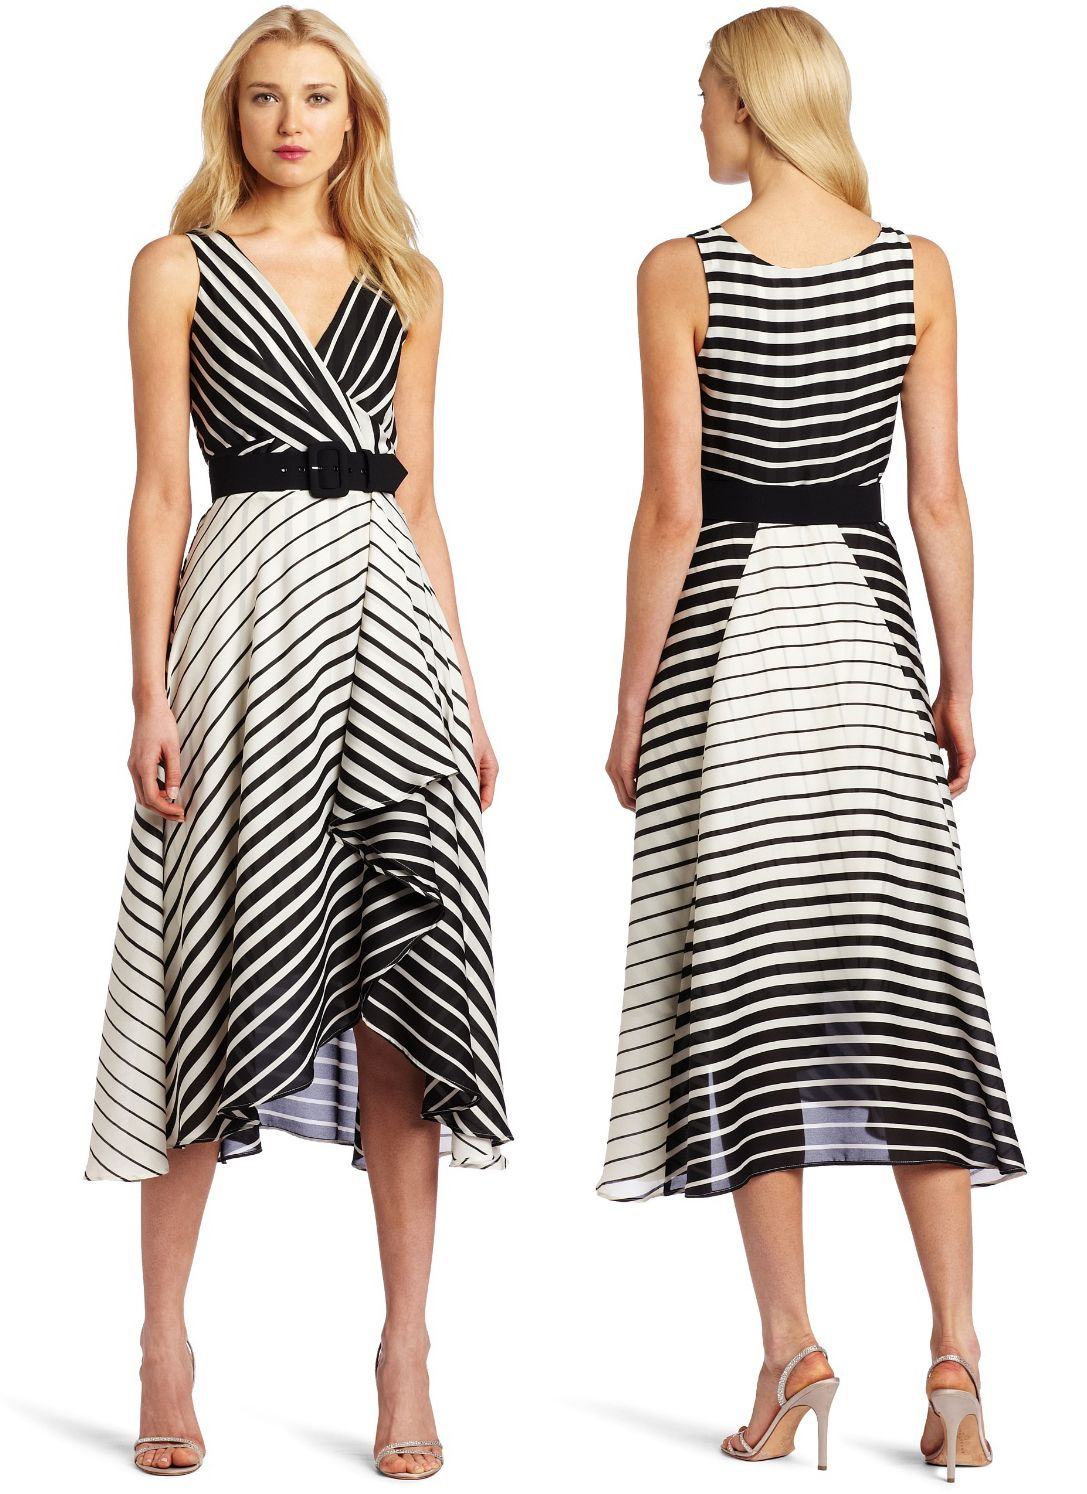 New Arrival, Camille Dress By Eva Franco